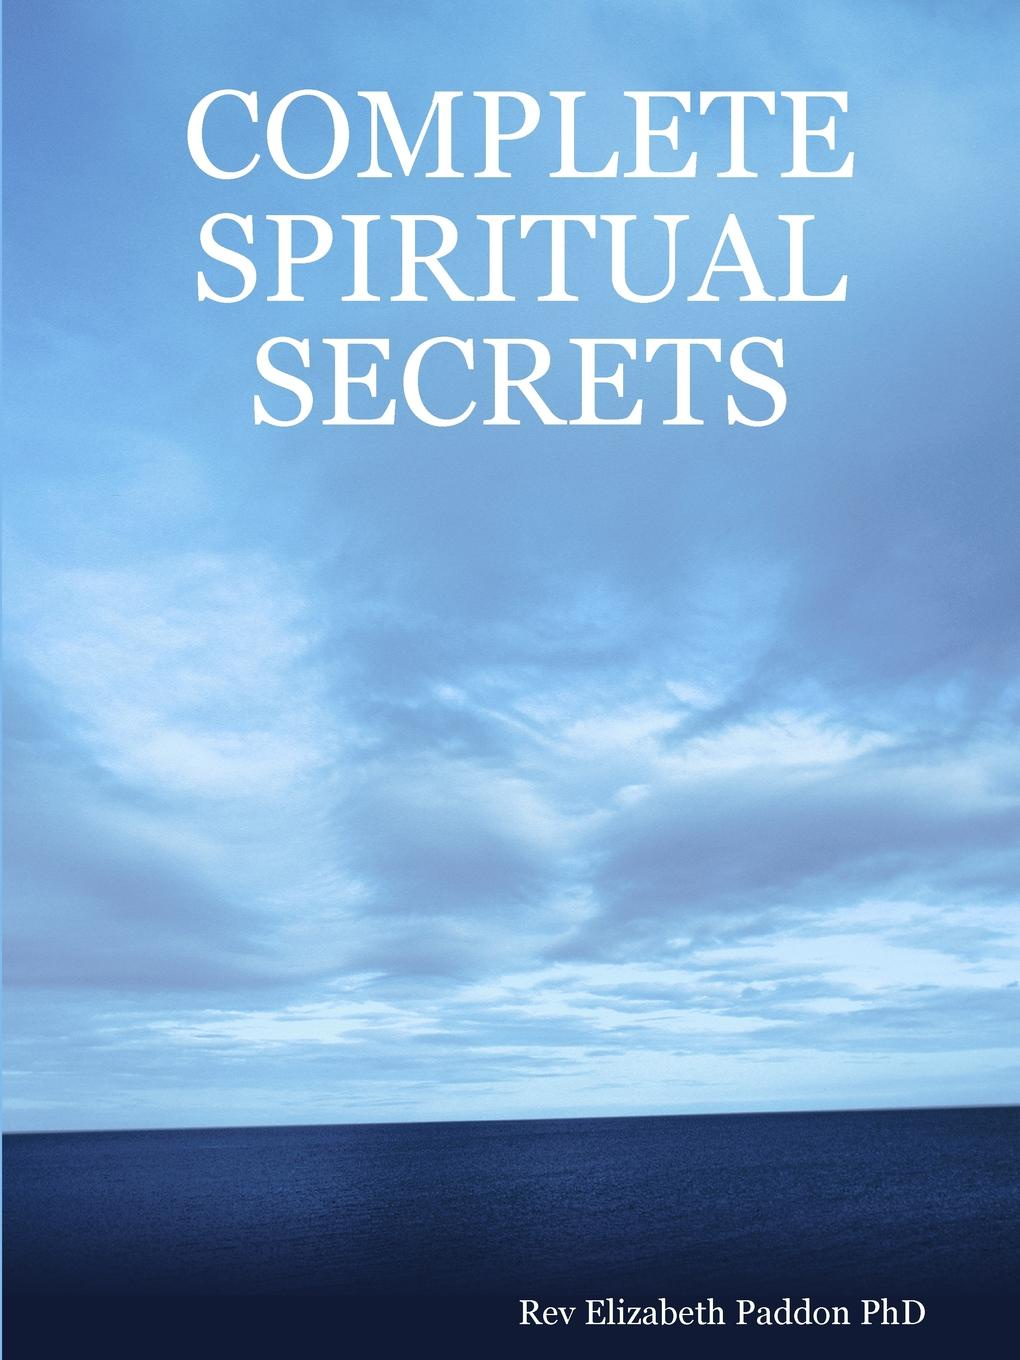 Rev Elizabeth Paddon PhD COMPLETE SPIRITUAL SECRETS travis monday help yourself to god s help